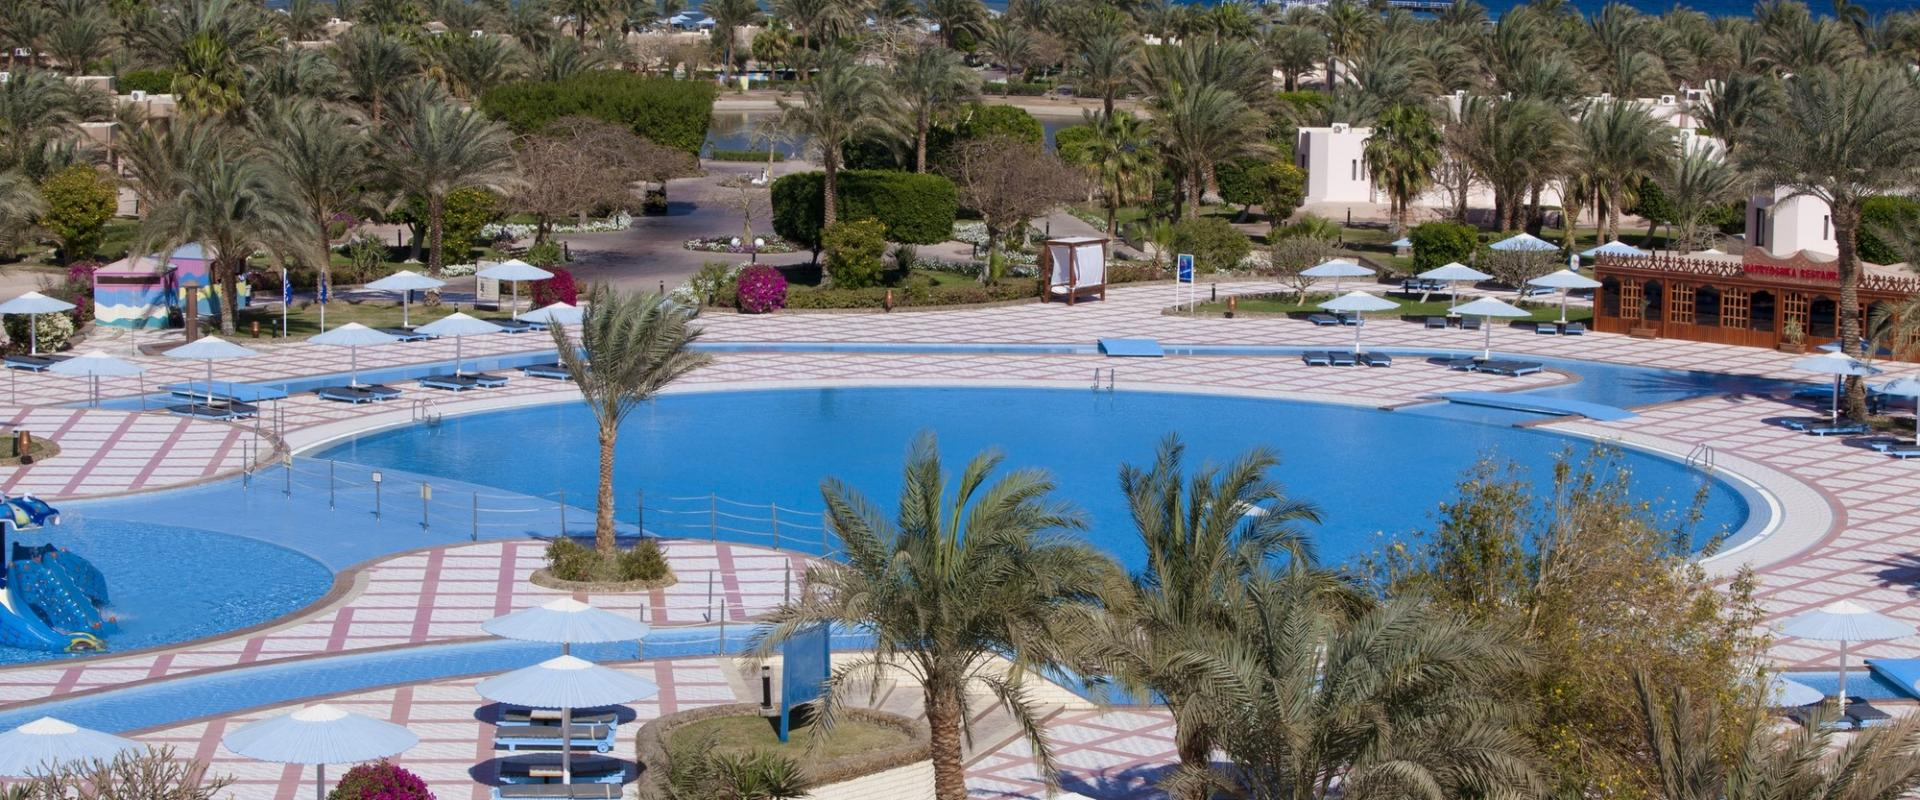 http://egypte.croisiere.voyage/wp-content/uploads/2016/11/HRG-SH-Hurghada-Pool-Beach.jpg